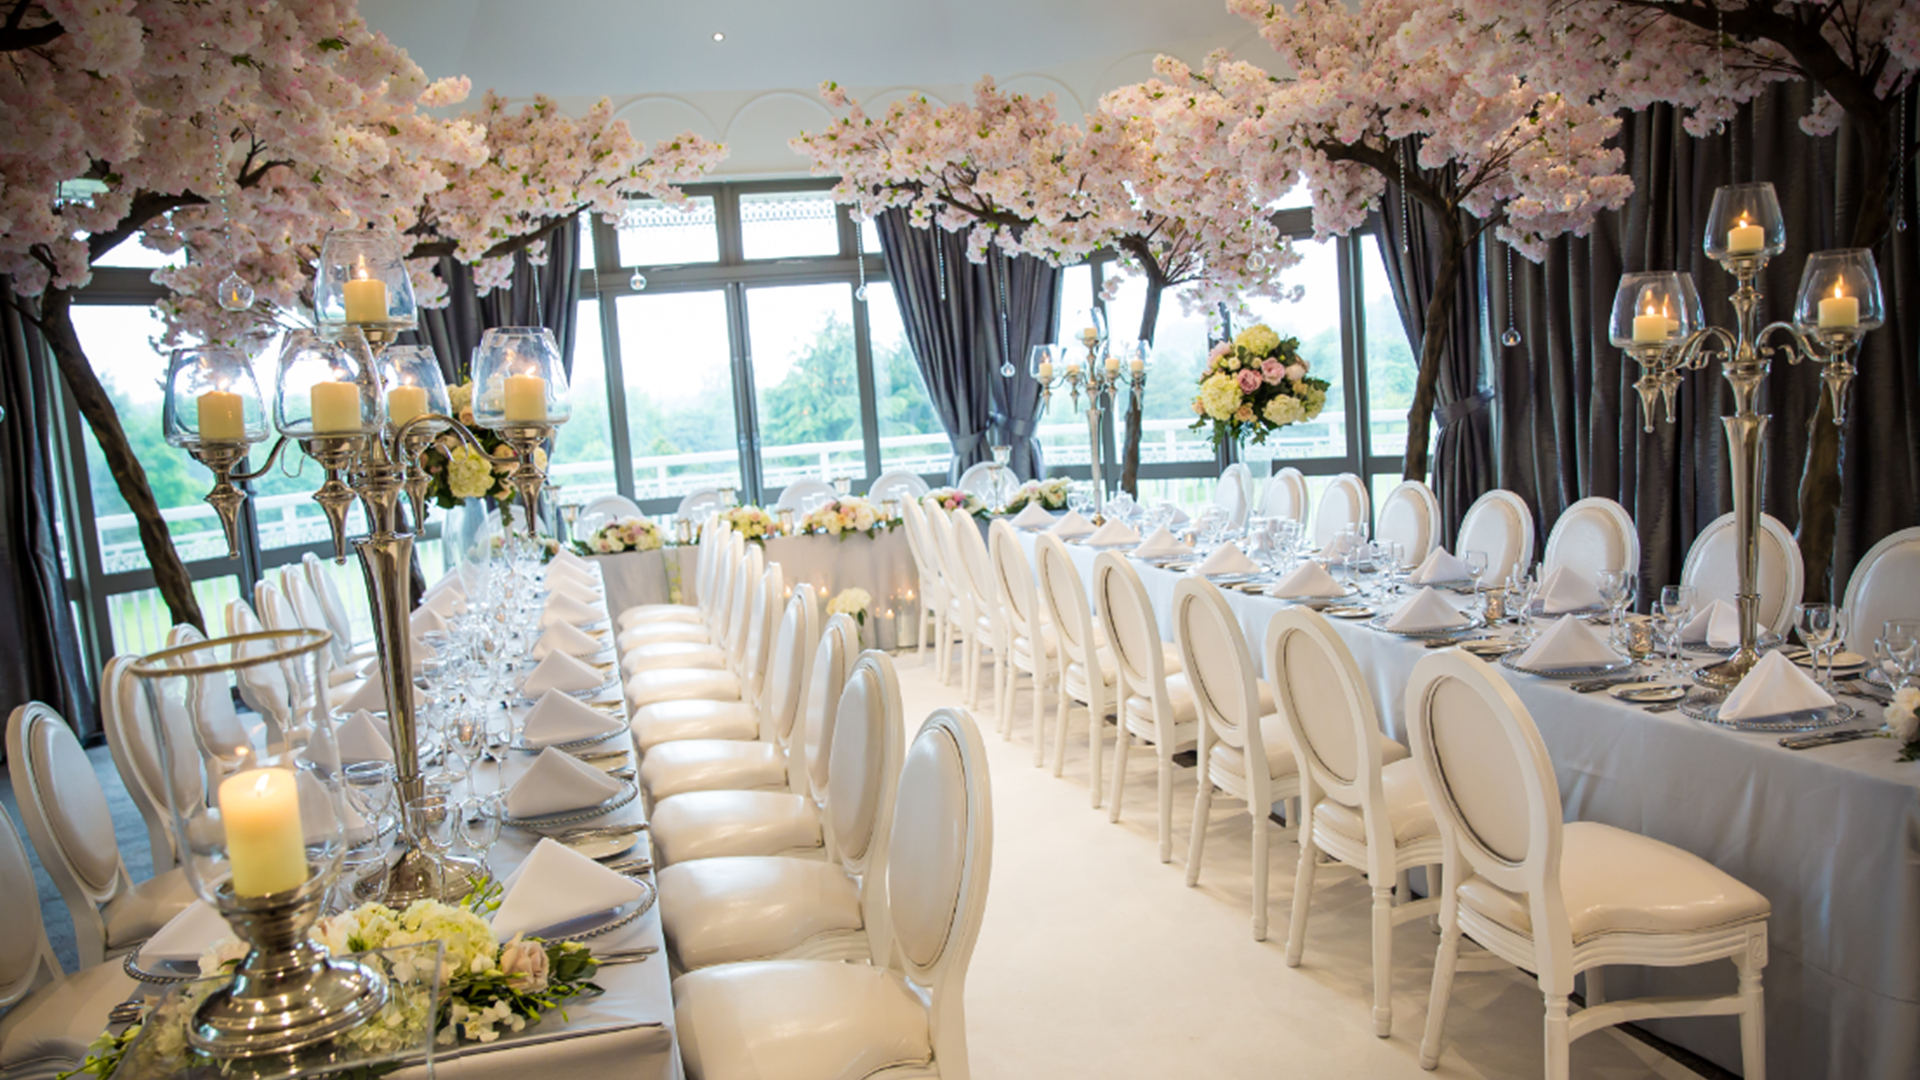 Wedding aisle decorated with floating candles in glass vases and floral arrangements